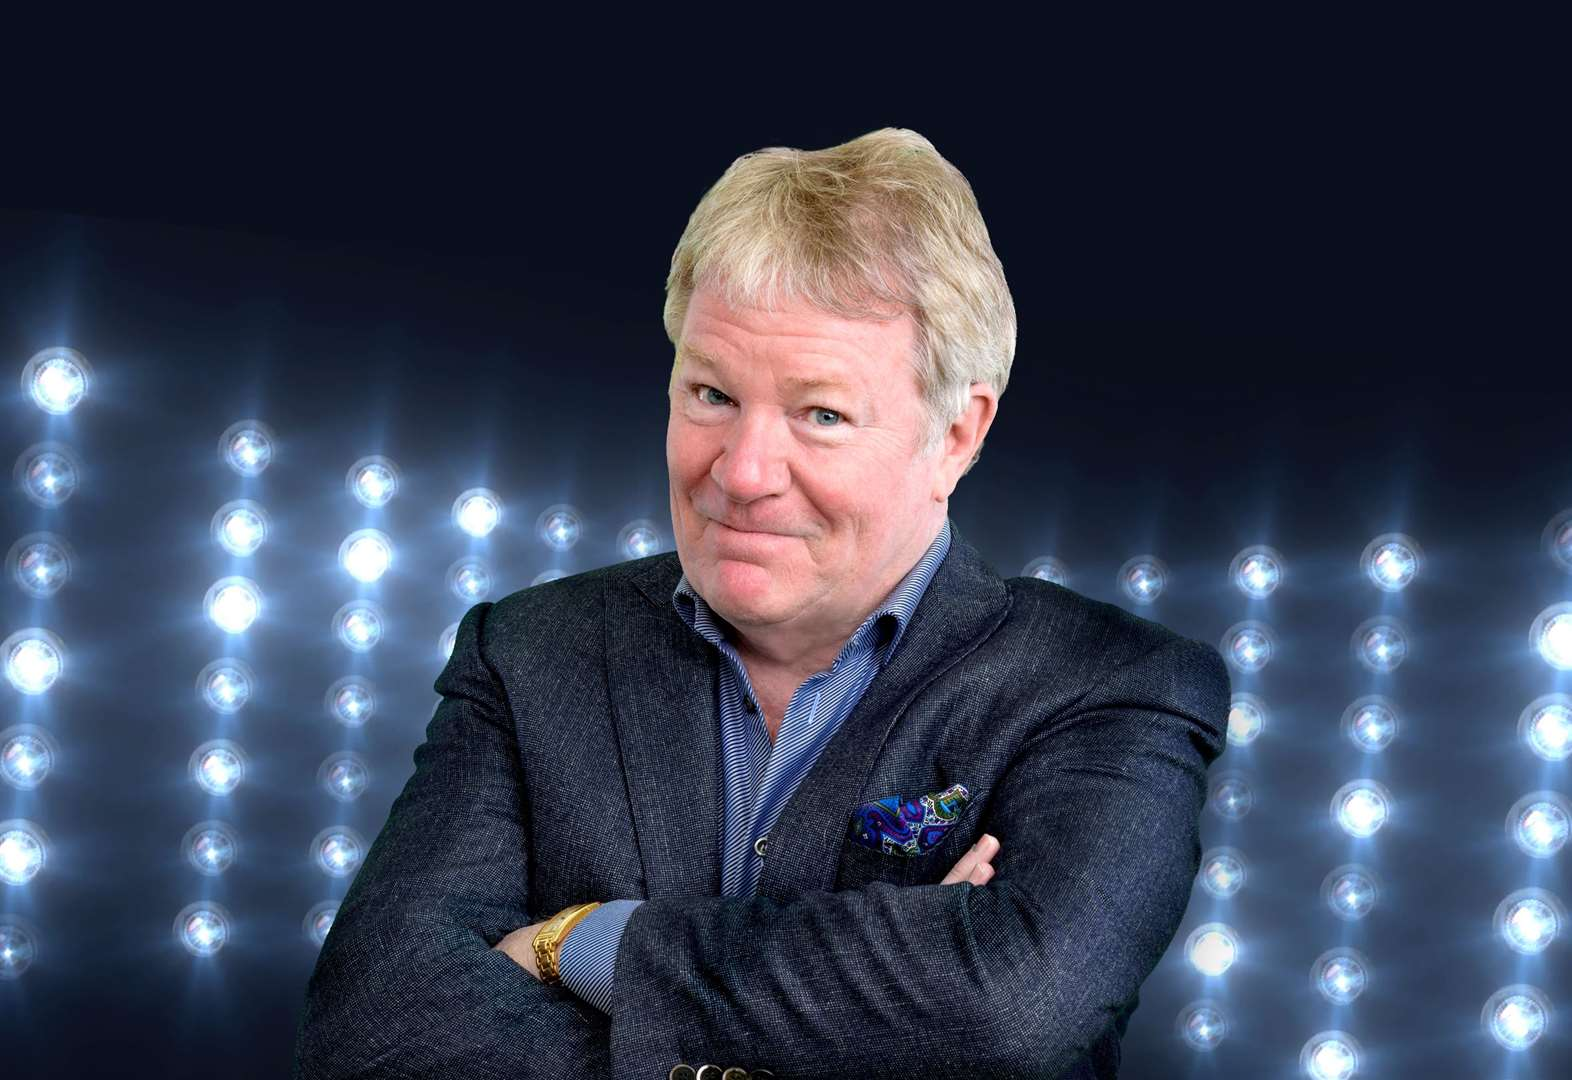 Jim Davidson to bring his antidote on Politcal Correctness to theatre